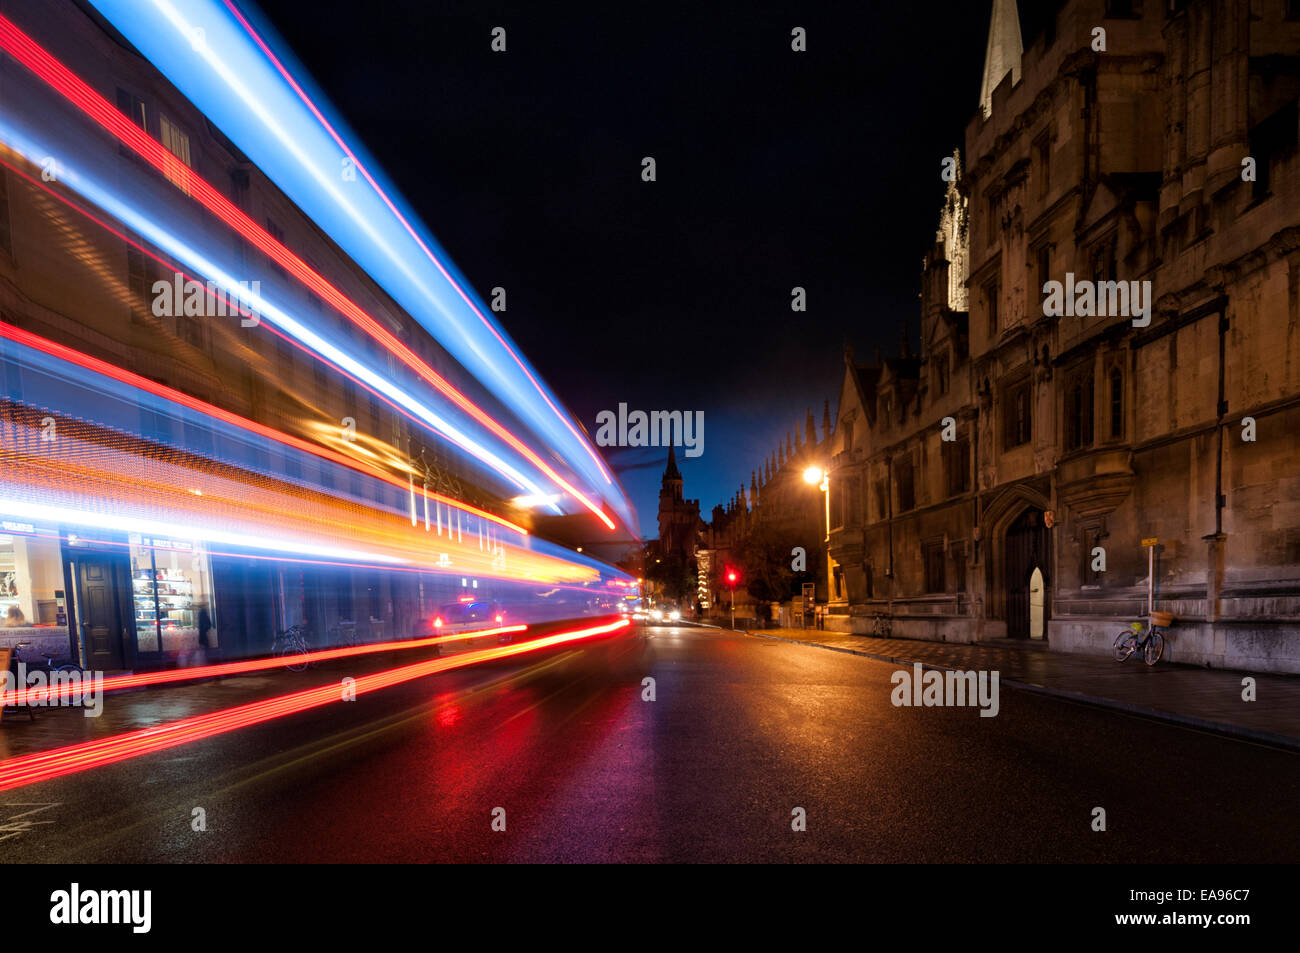 Oxford Hight Street at night with streaks of light from passing cars - Stock Image